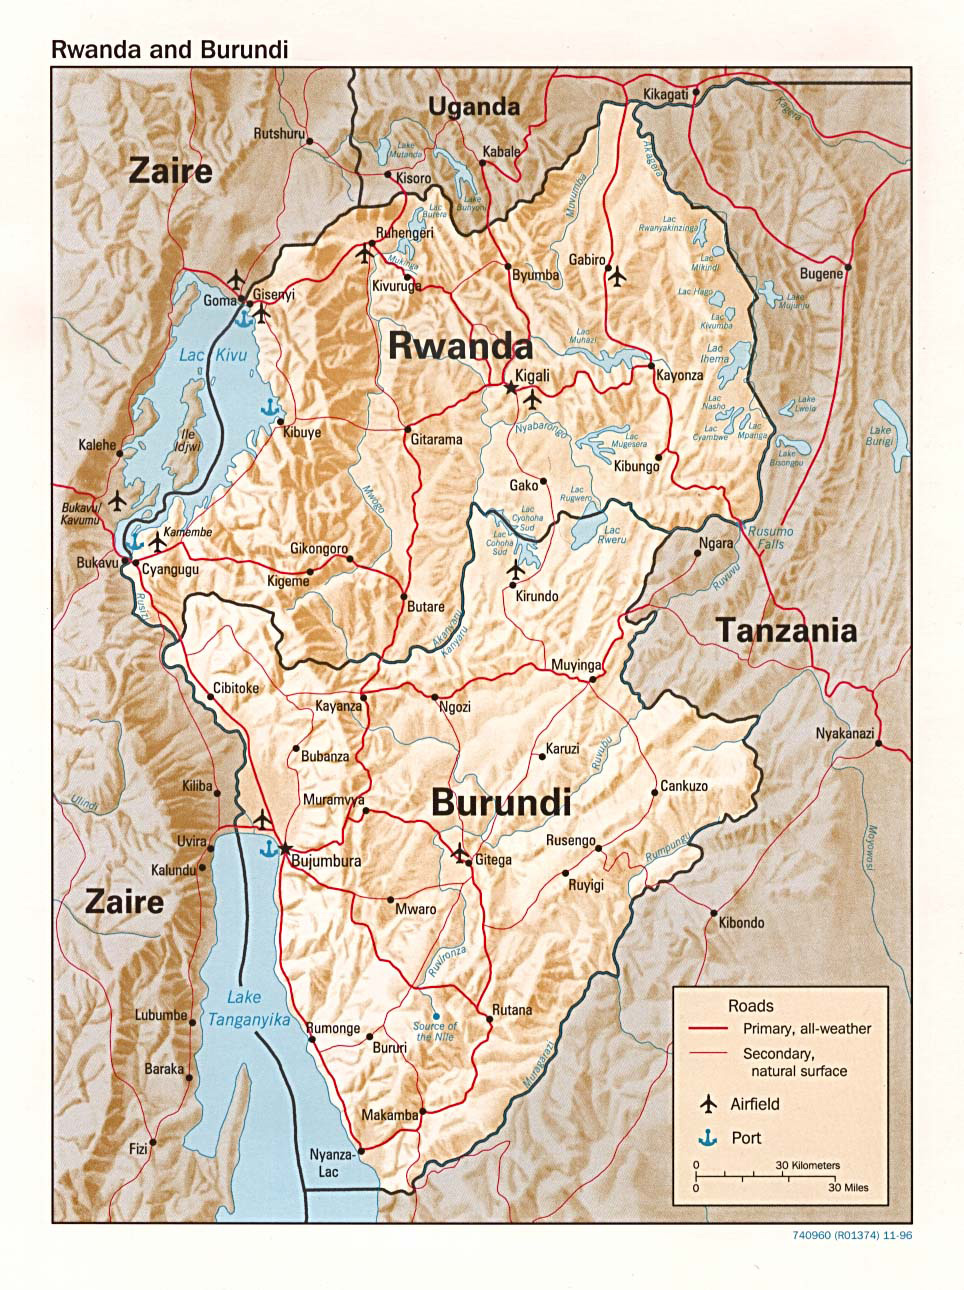 Large relief and road map of Burundi. Burundi large relief and road on road map suriname, road map spain, road map west africa, road map southern africa, road map lebanon, road map hungary, road map martinique, road map kenya, road map anguilla, road map zimbabwe, road map bosnia and herzegovina, road map lesotho, road map cameroon, road map congo, road map ethiopia, road map italy, road map guam, road map vatican city, road map maputo, road map mali,